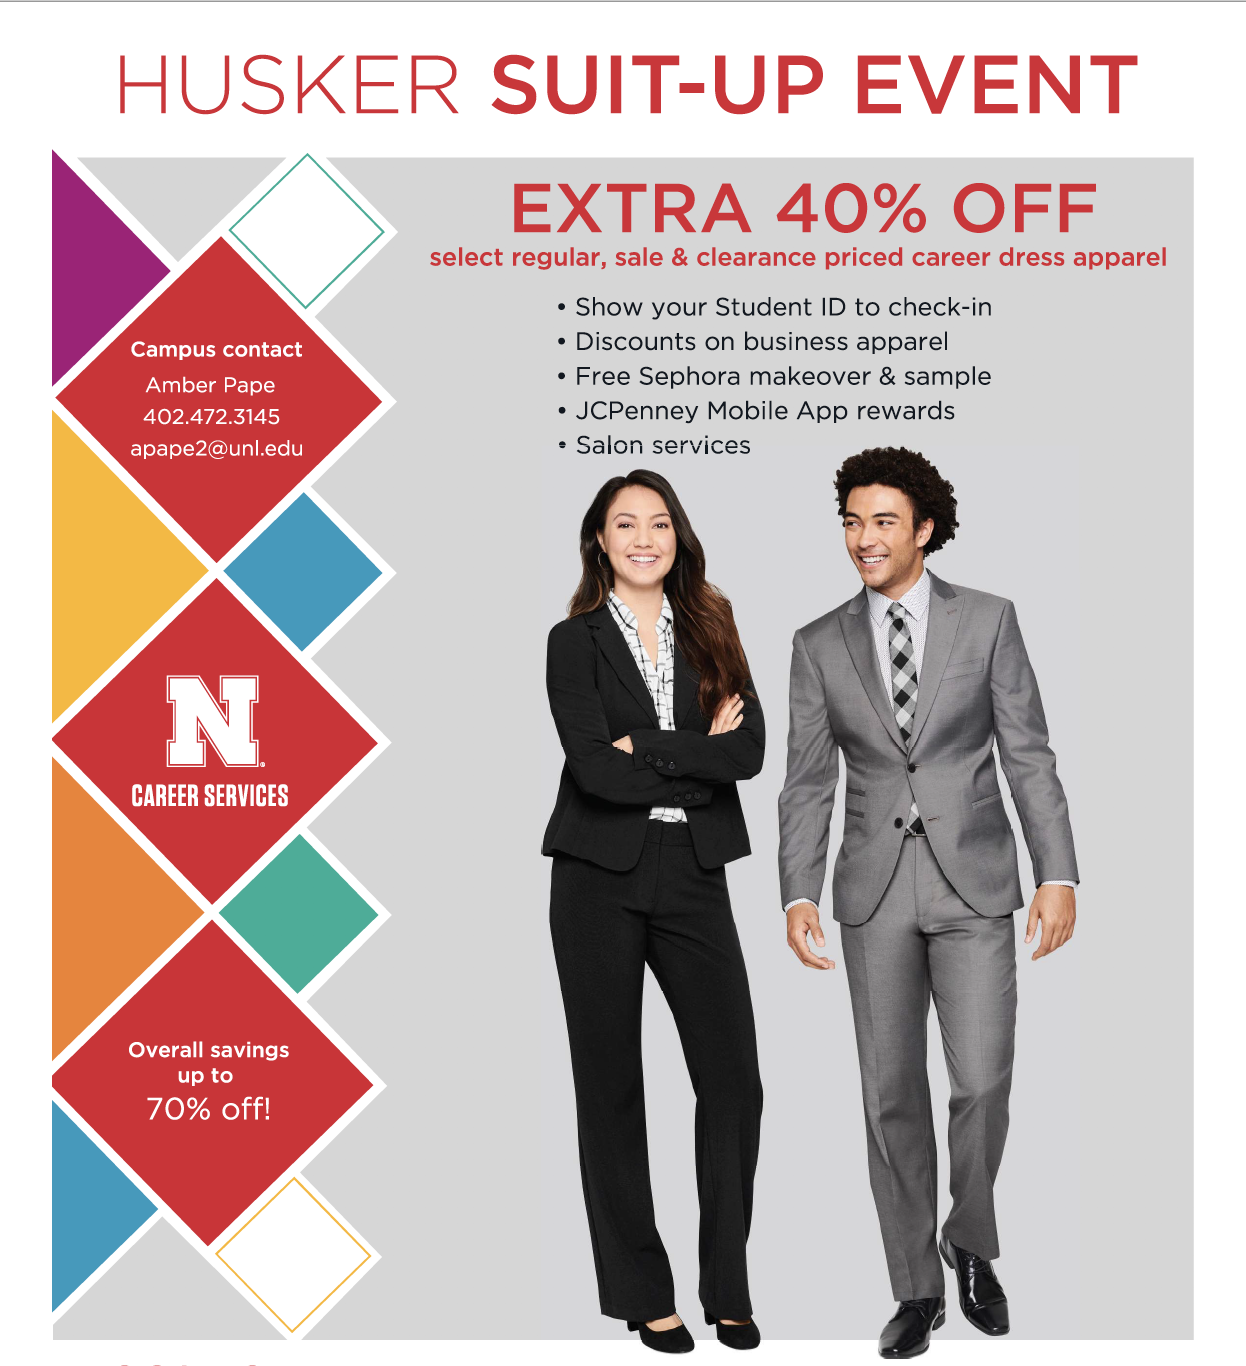 Husker Suit-Up event can get you ready for career opportunities